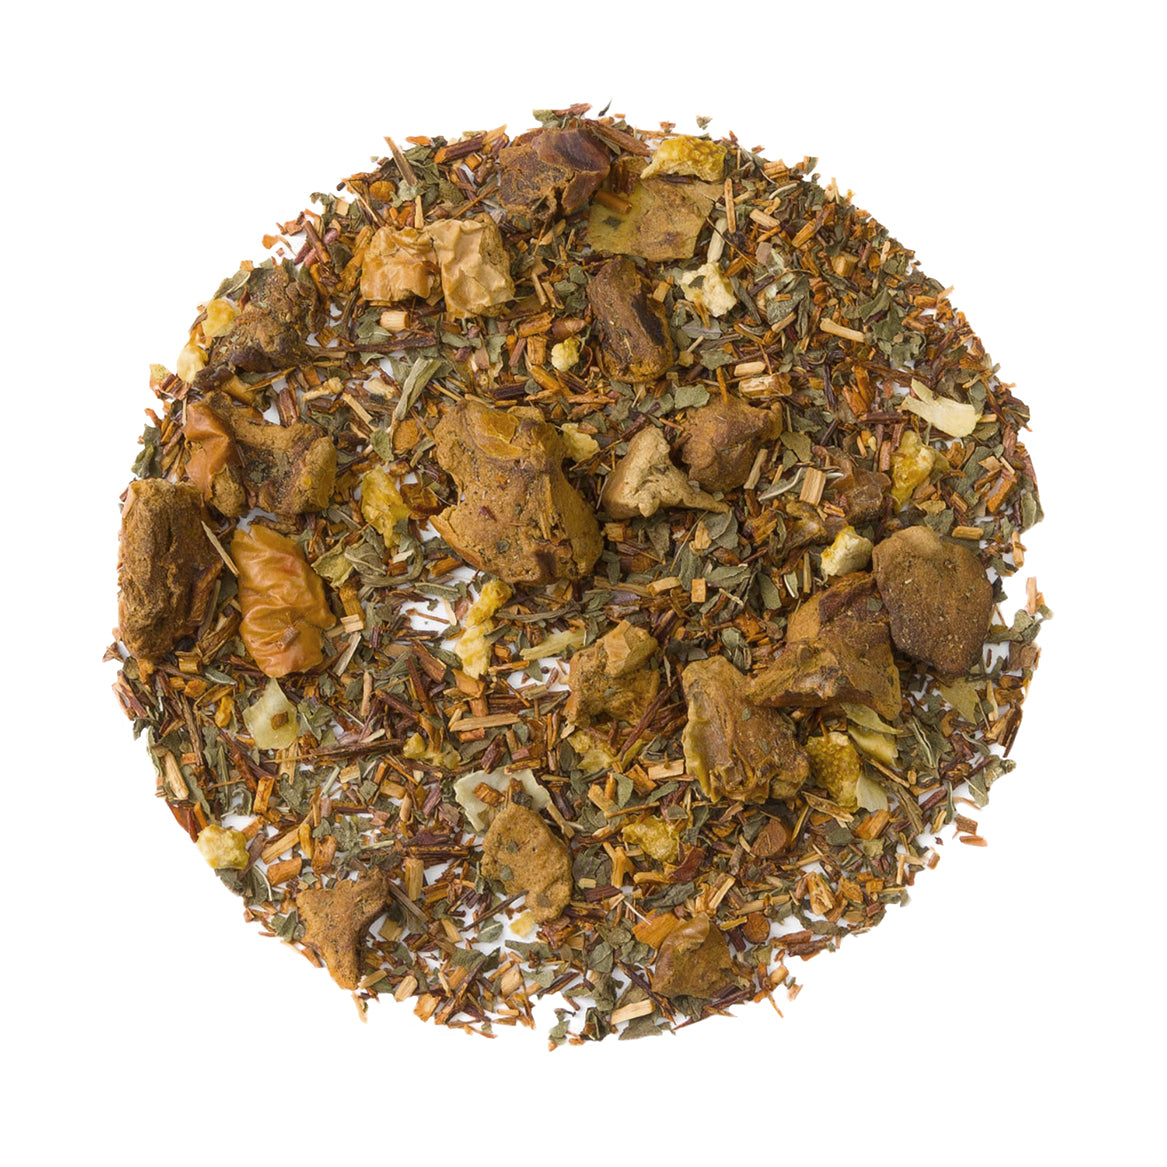 Chocolate Rooibos Mint - Loose Leaf Rooibos Herbal Tisane - Heavenly Tea Leaves